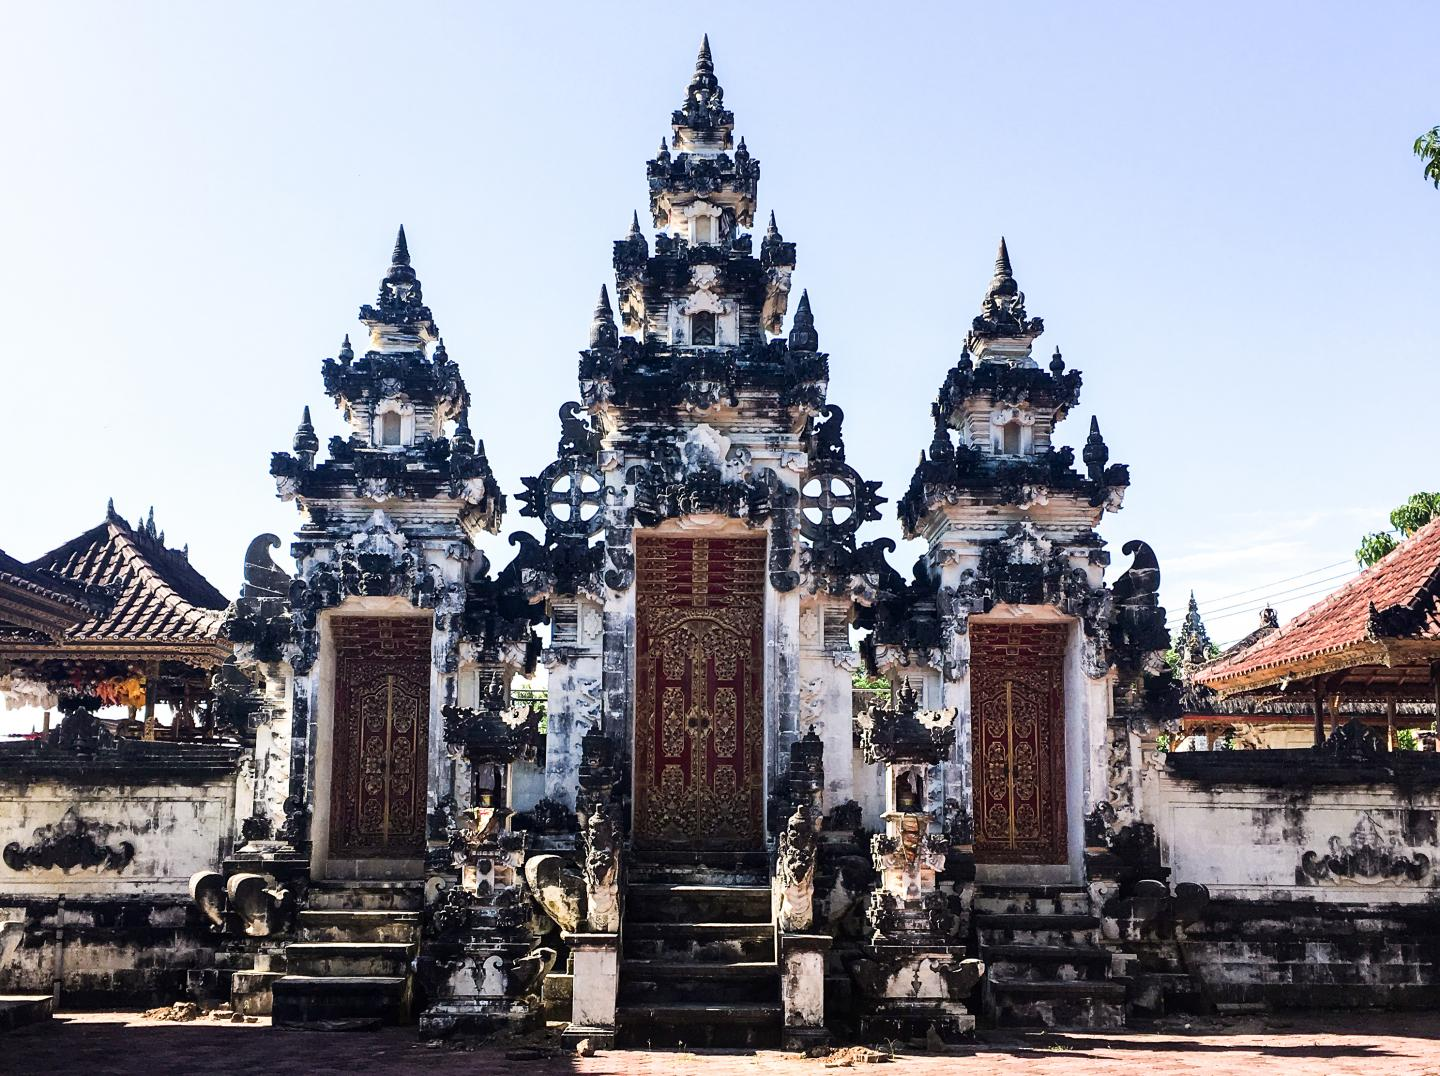 Traditional architecture in Bali, Indonesia